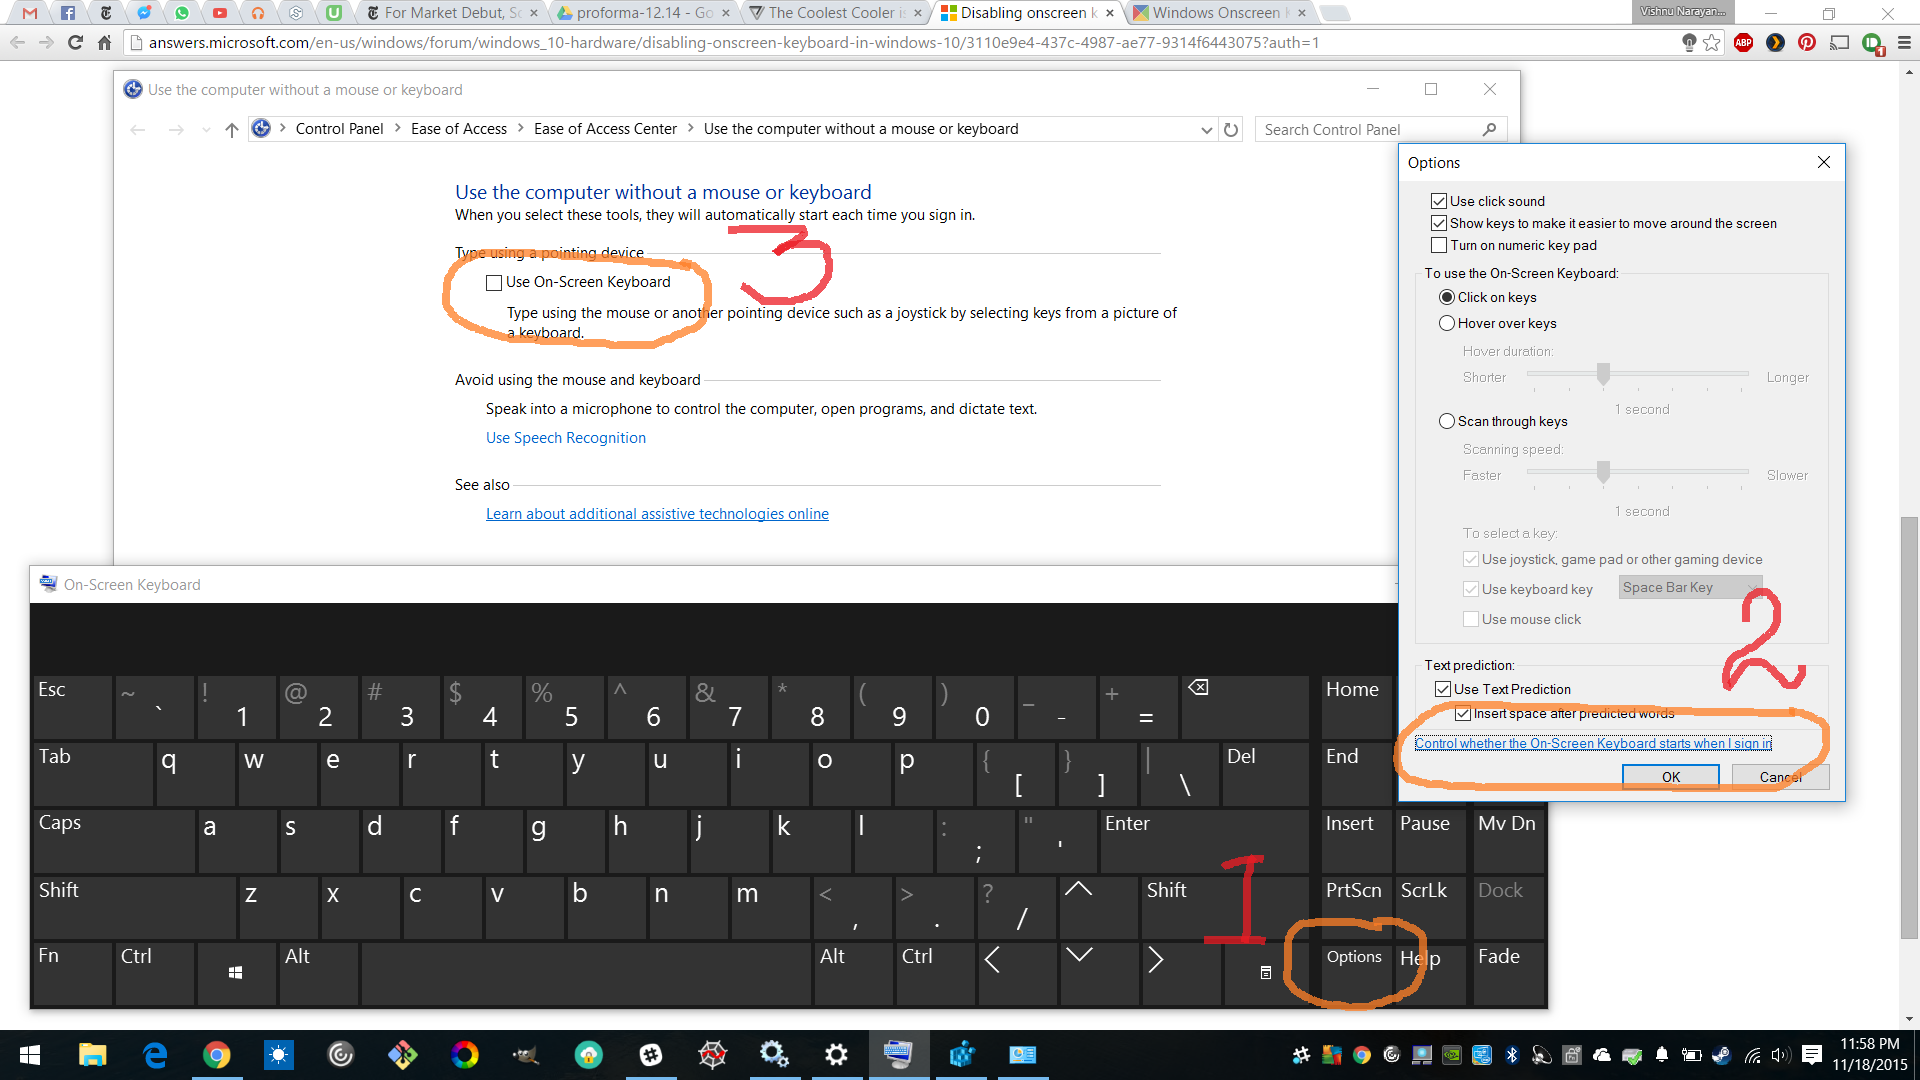 How to Disable Annoying On-Screen Keyboard in Windows 10 (or 8)